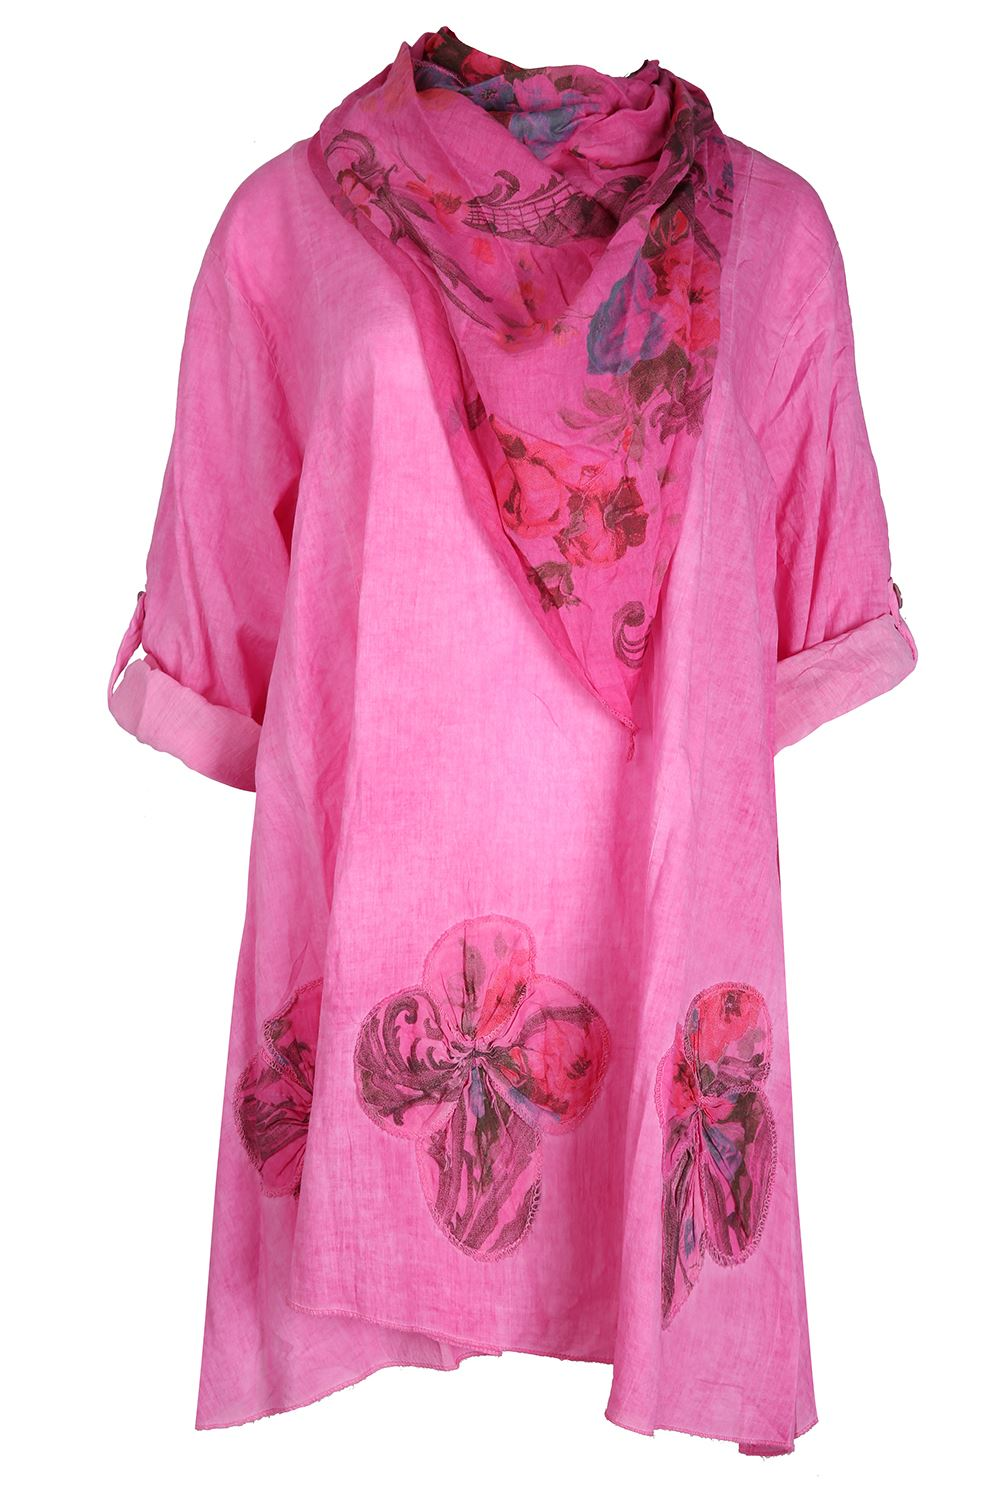 Want to make a serious statement? Slip into a handkerchief-hem tunic from Grace Elements, Cable & Gauge, and Style&co. Drawing the focus away from the hips and thighs, this dramatic design is perfect for elongating the bottom half of the body. Choose a fun and flirty ruffled silhouette or go big and bold with a vibrant print for a look that's .